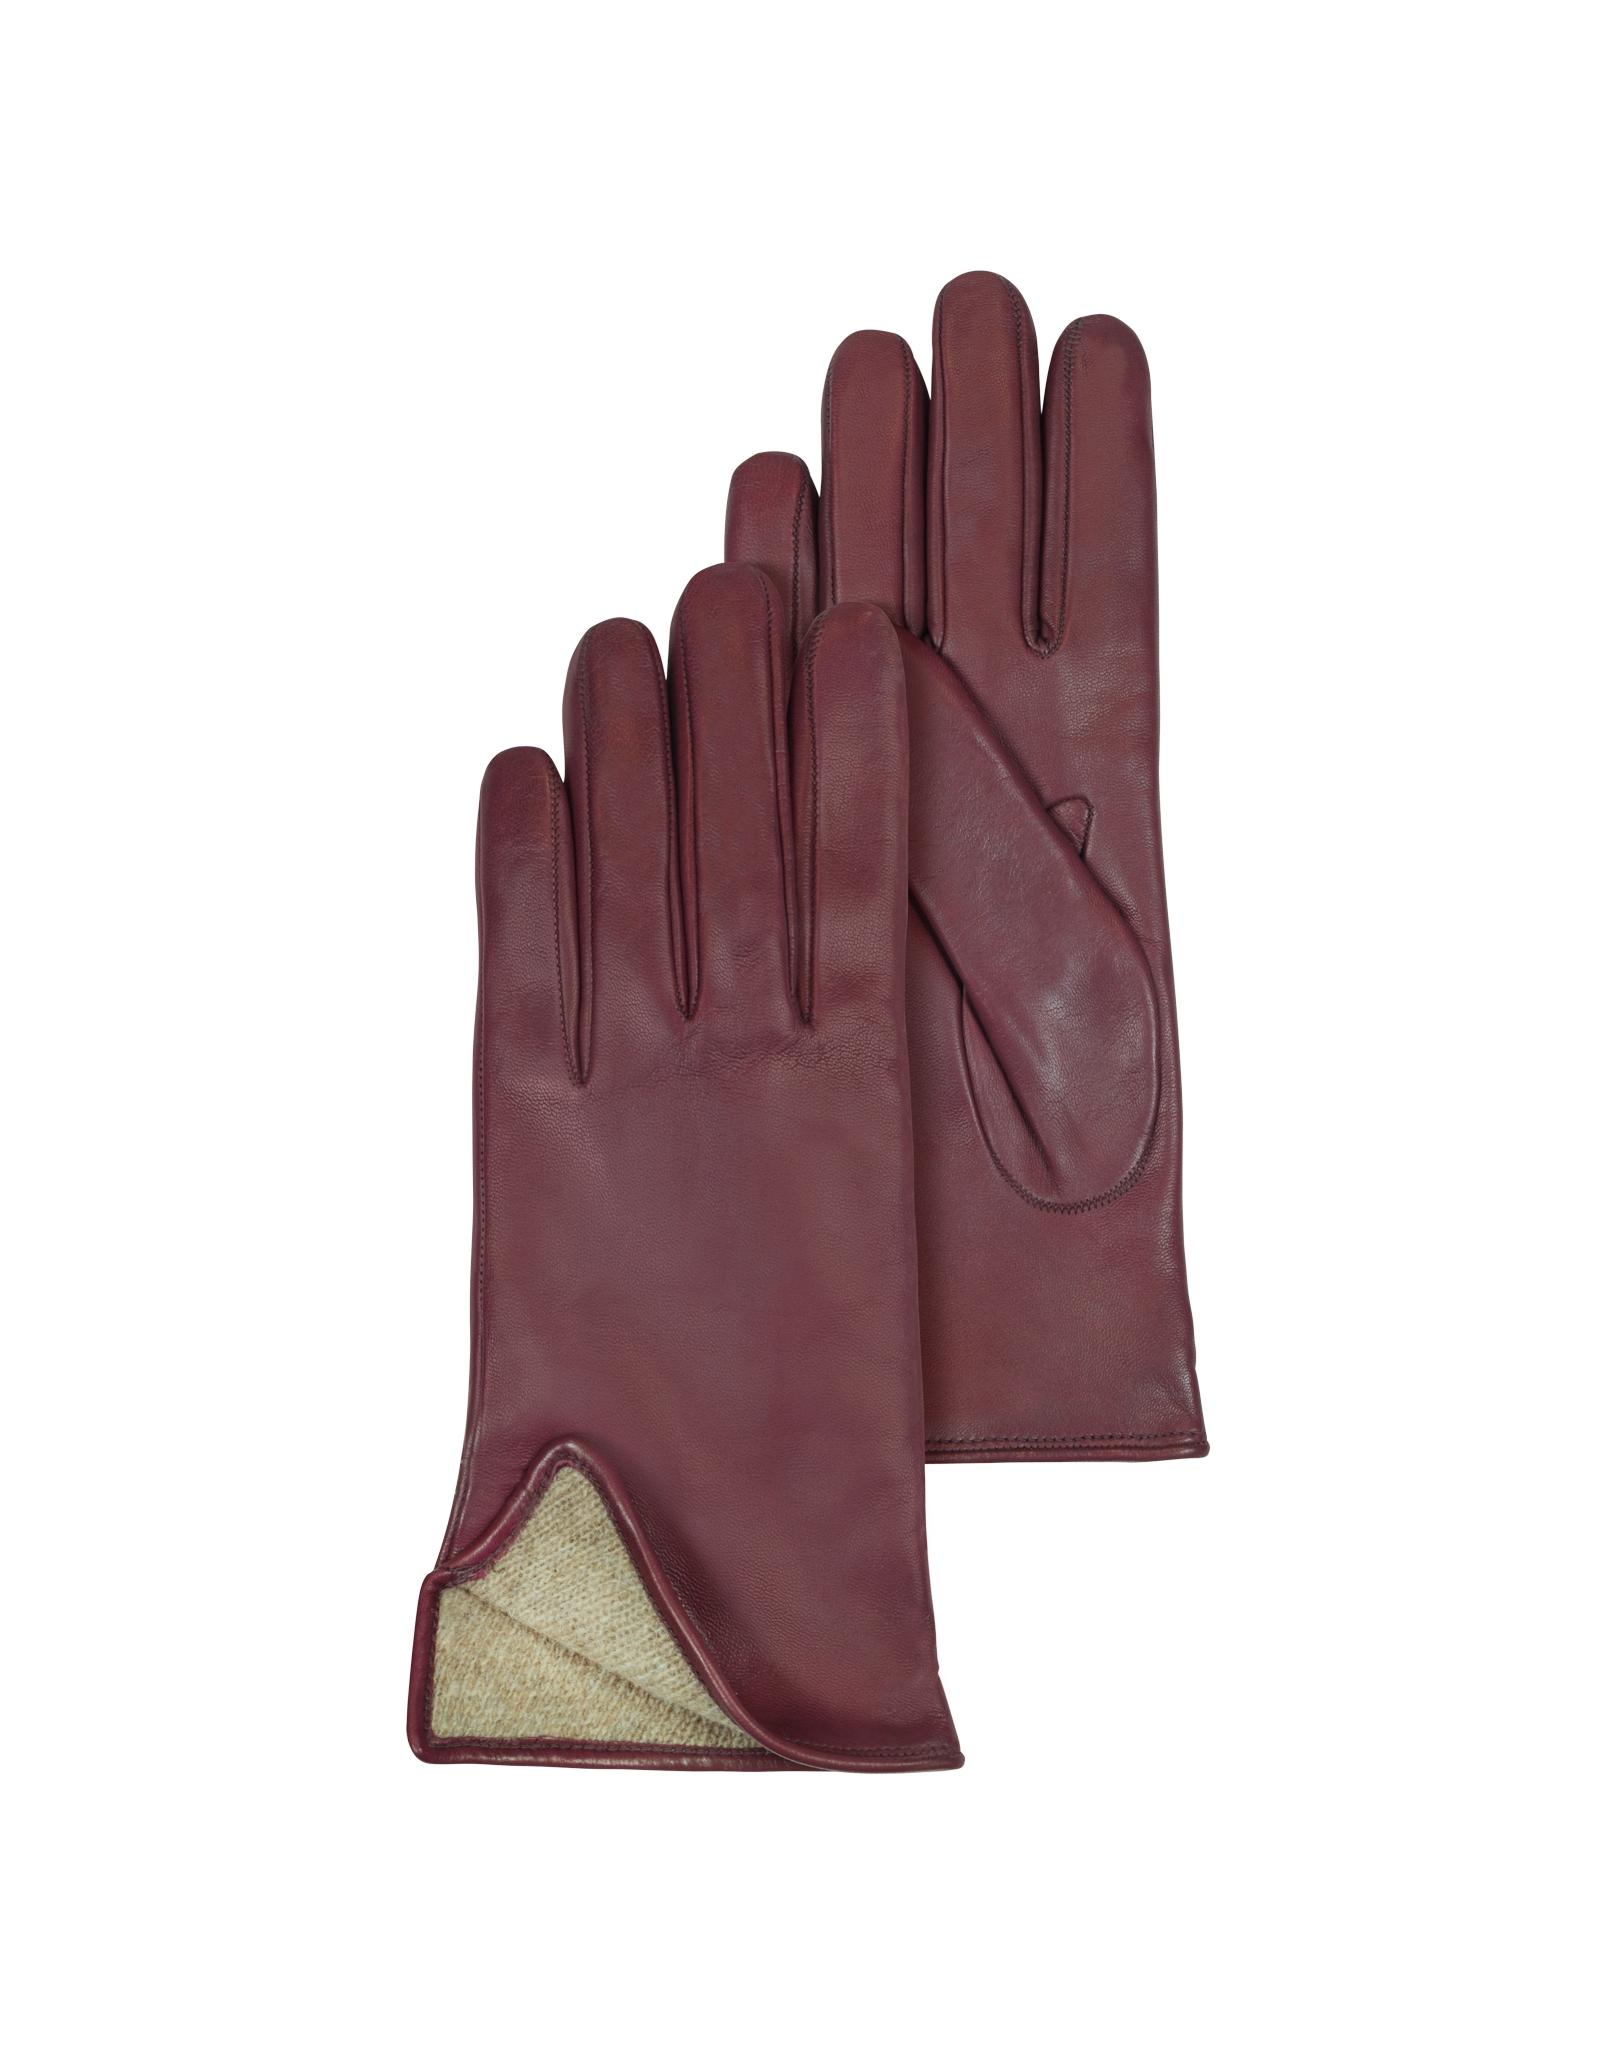 Womens leather gloves burgundy -